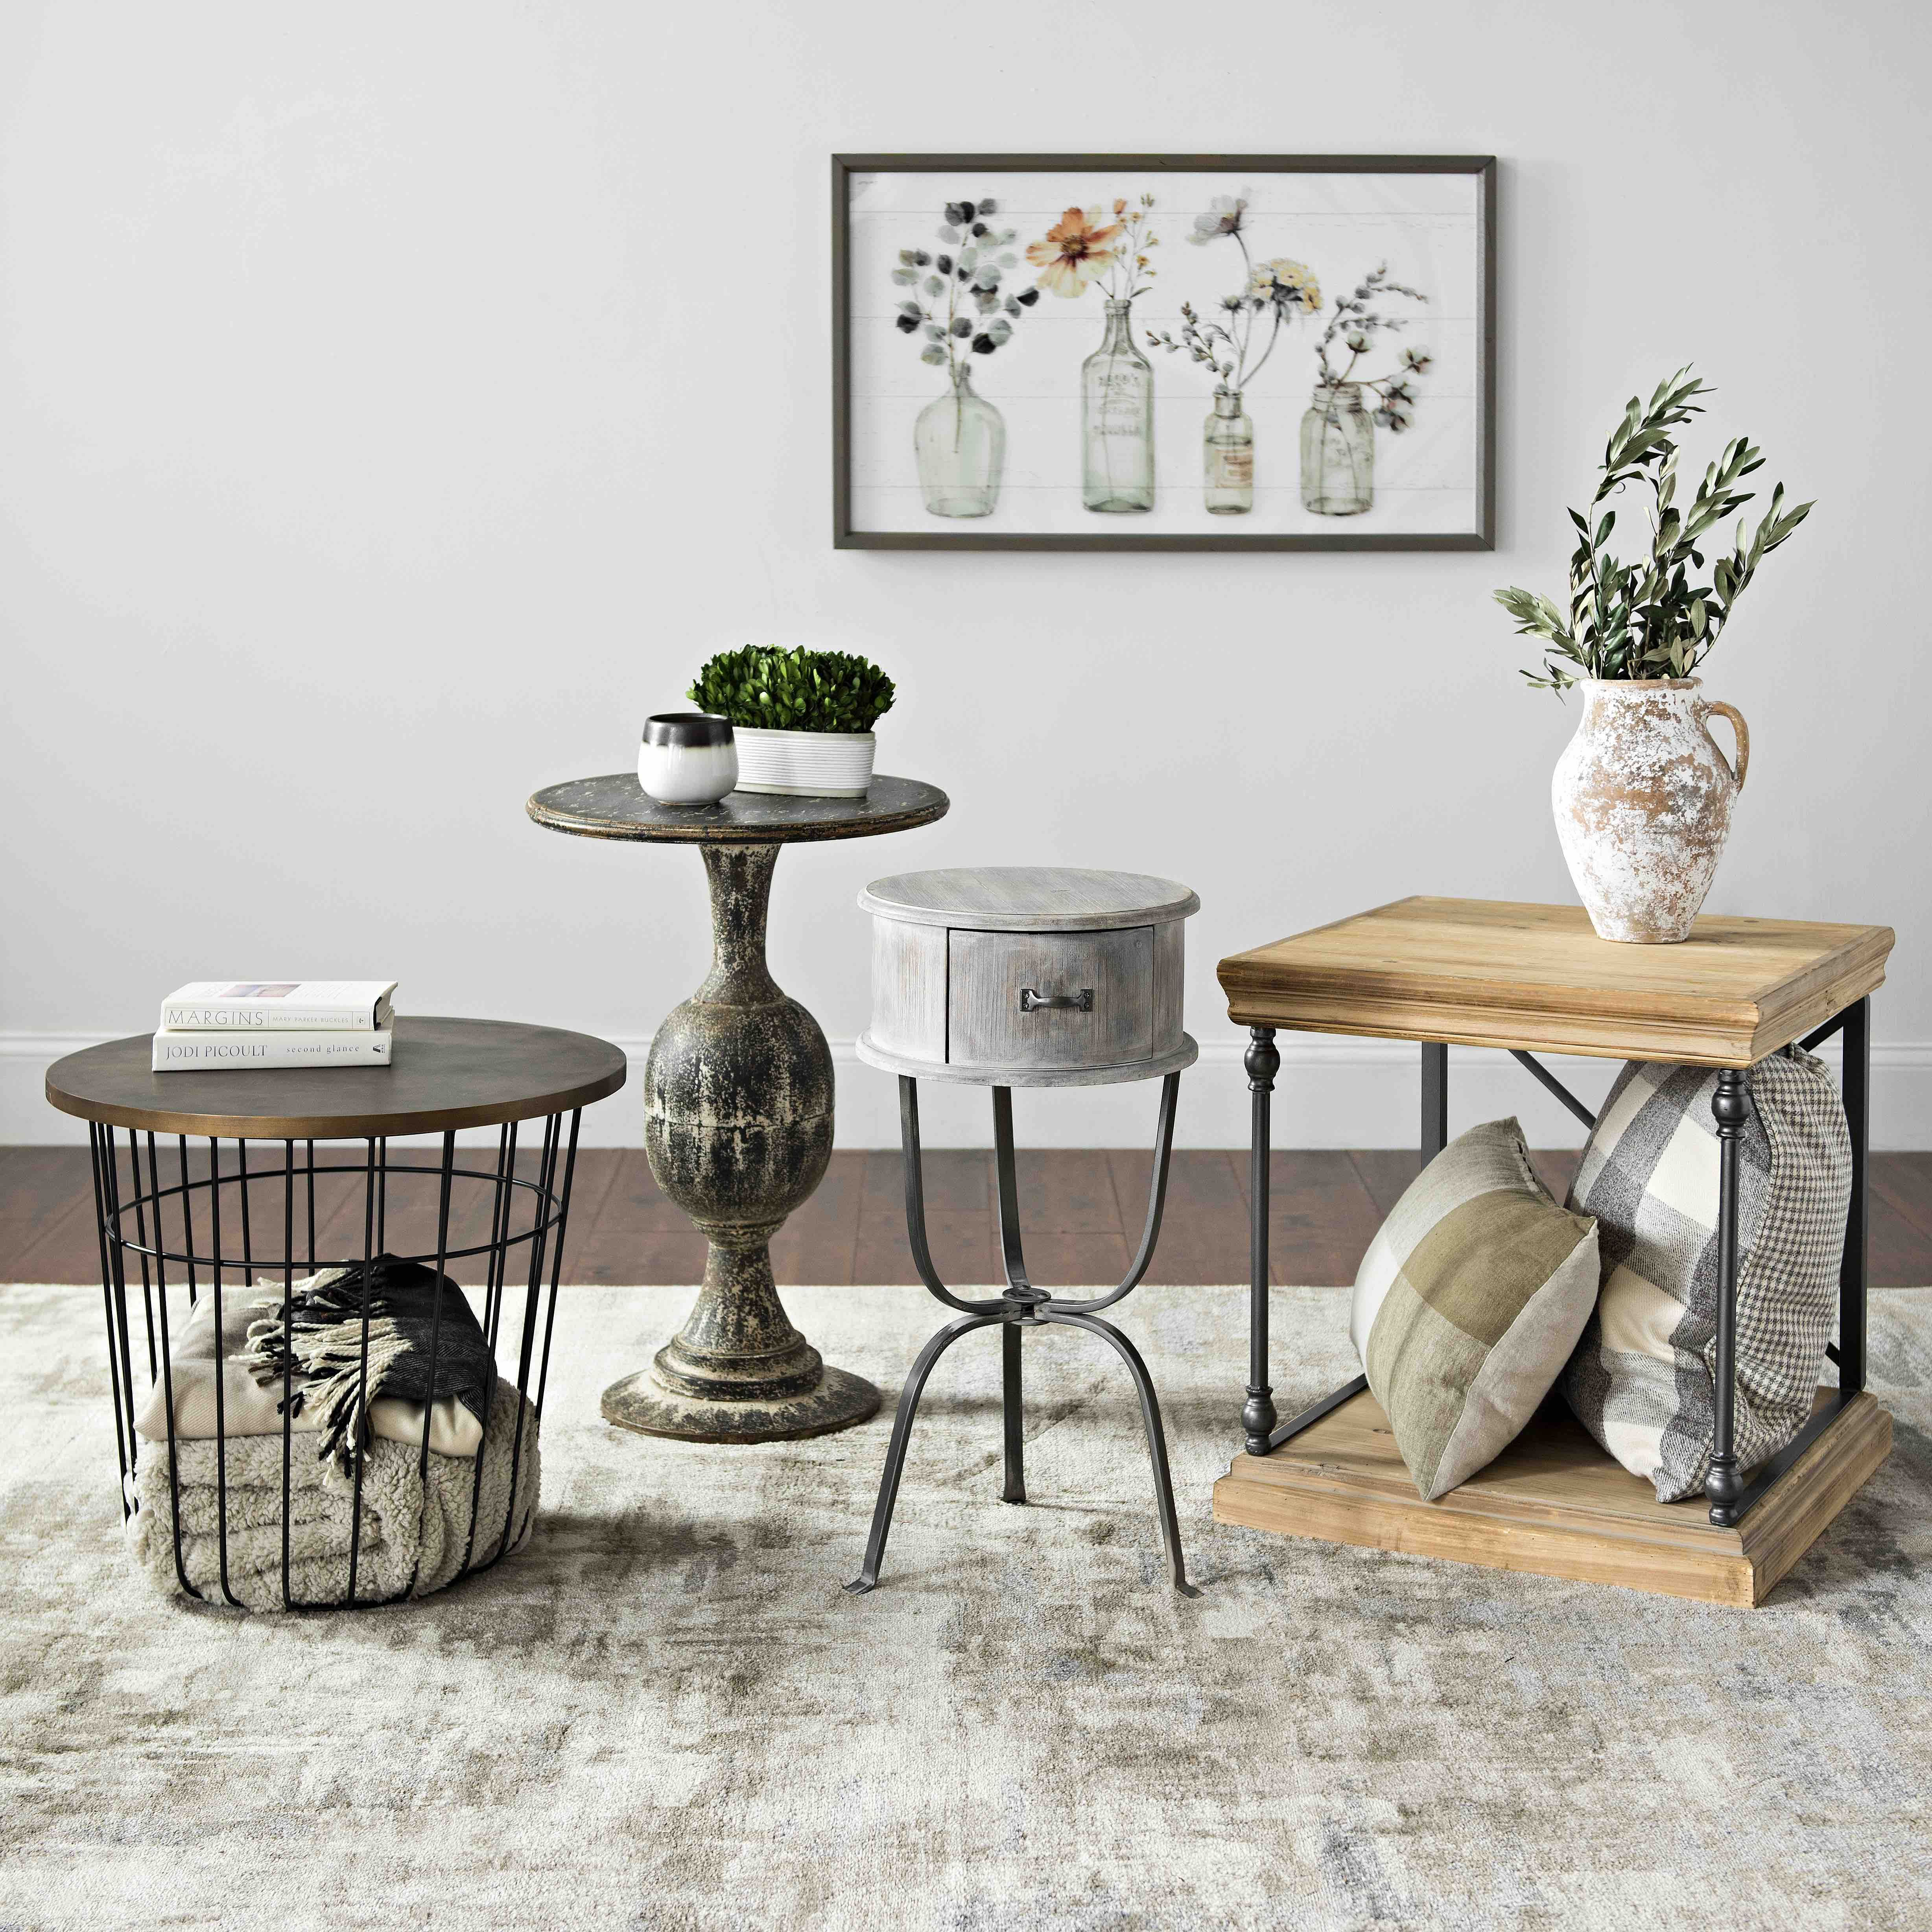 accent tables are super versatile and functional decor piece farmhouse style table rules mirrored rectangular coffee next counter set lamps inexpensive modern metal glass mini